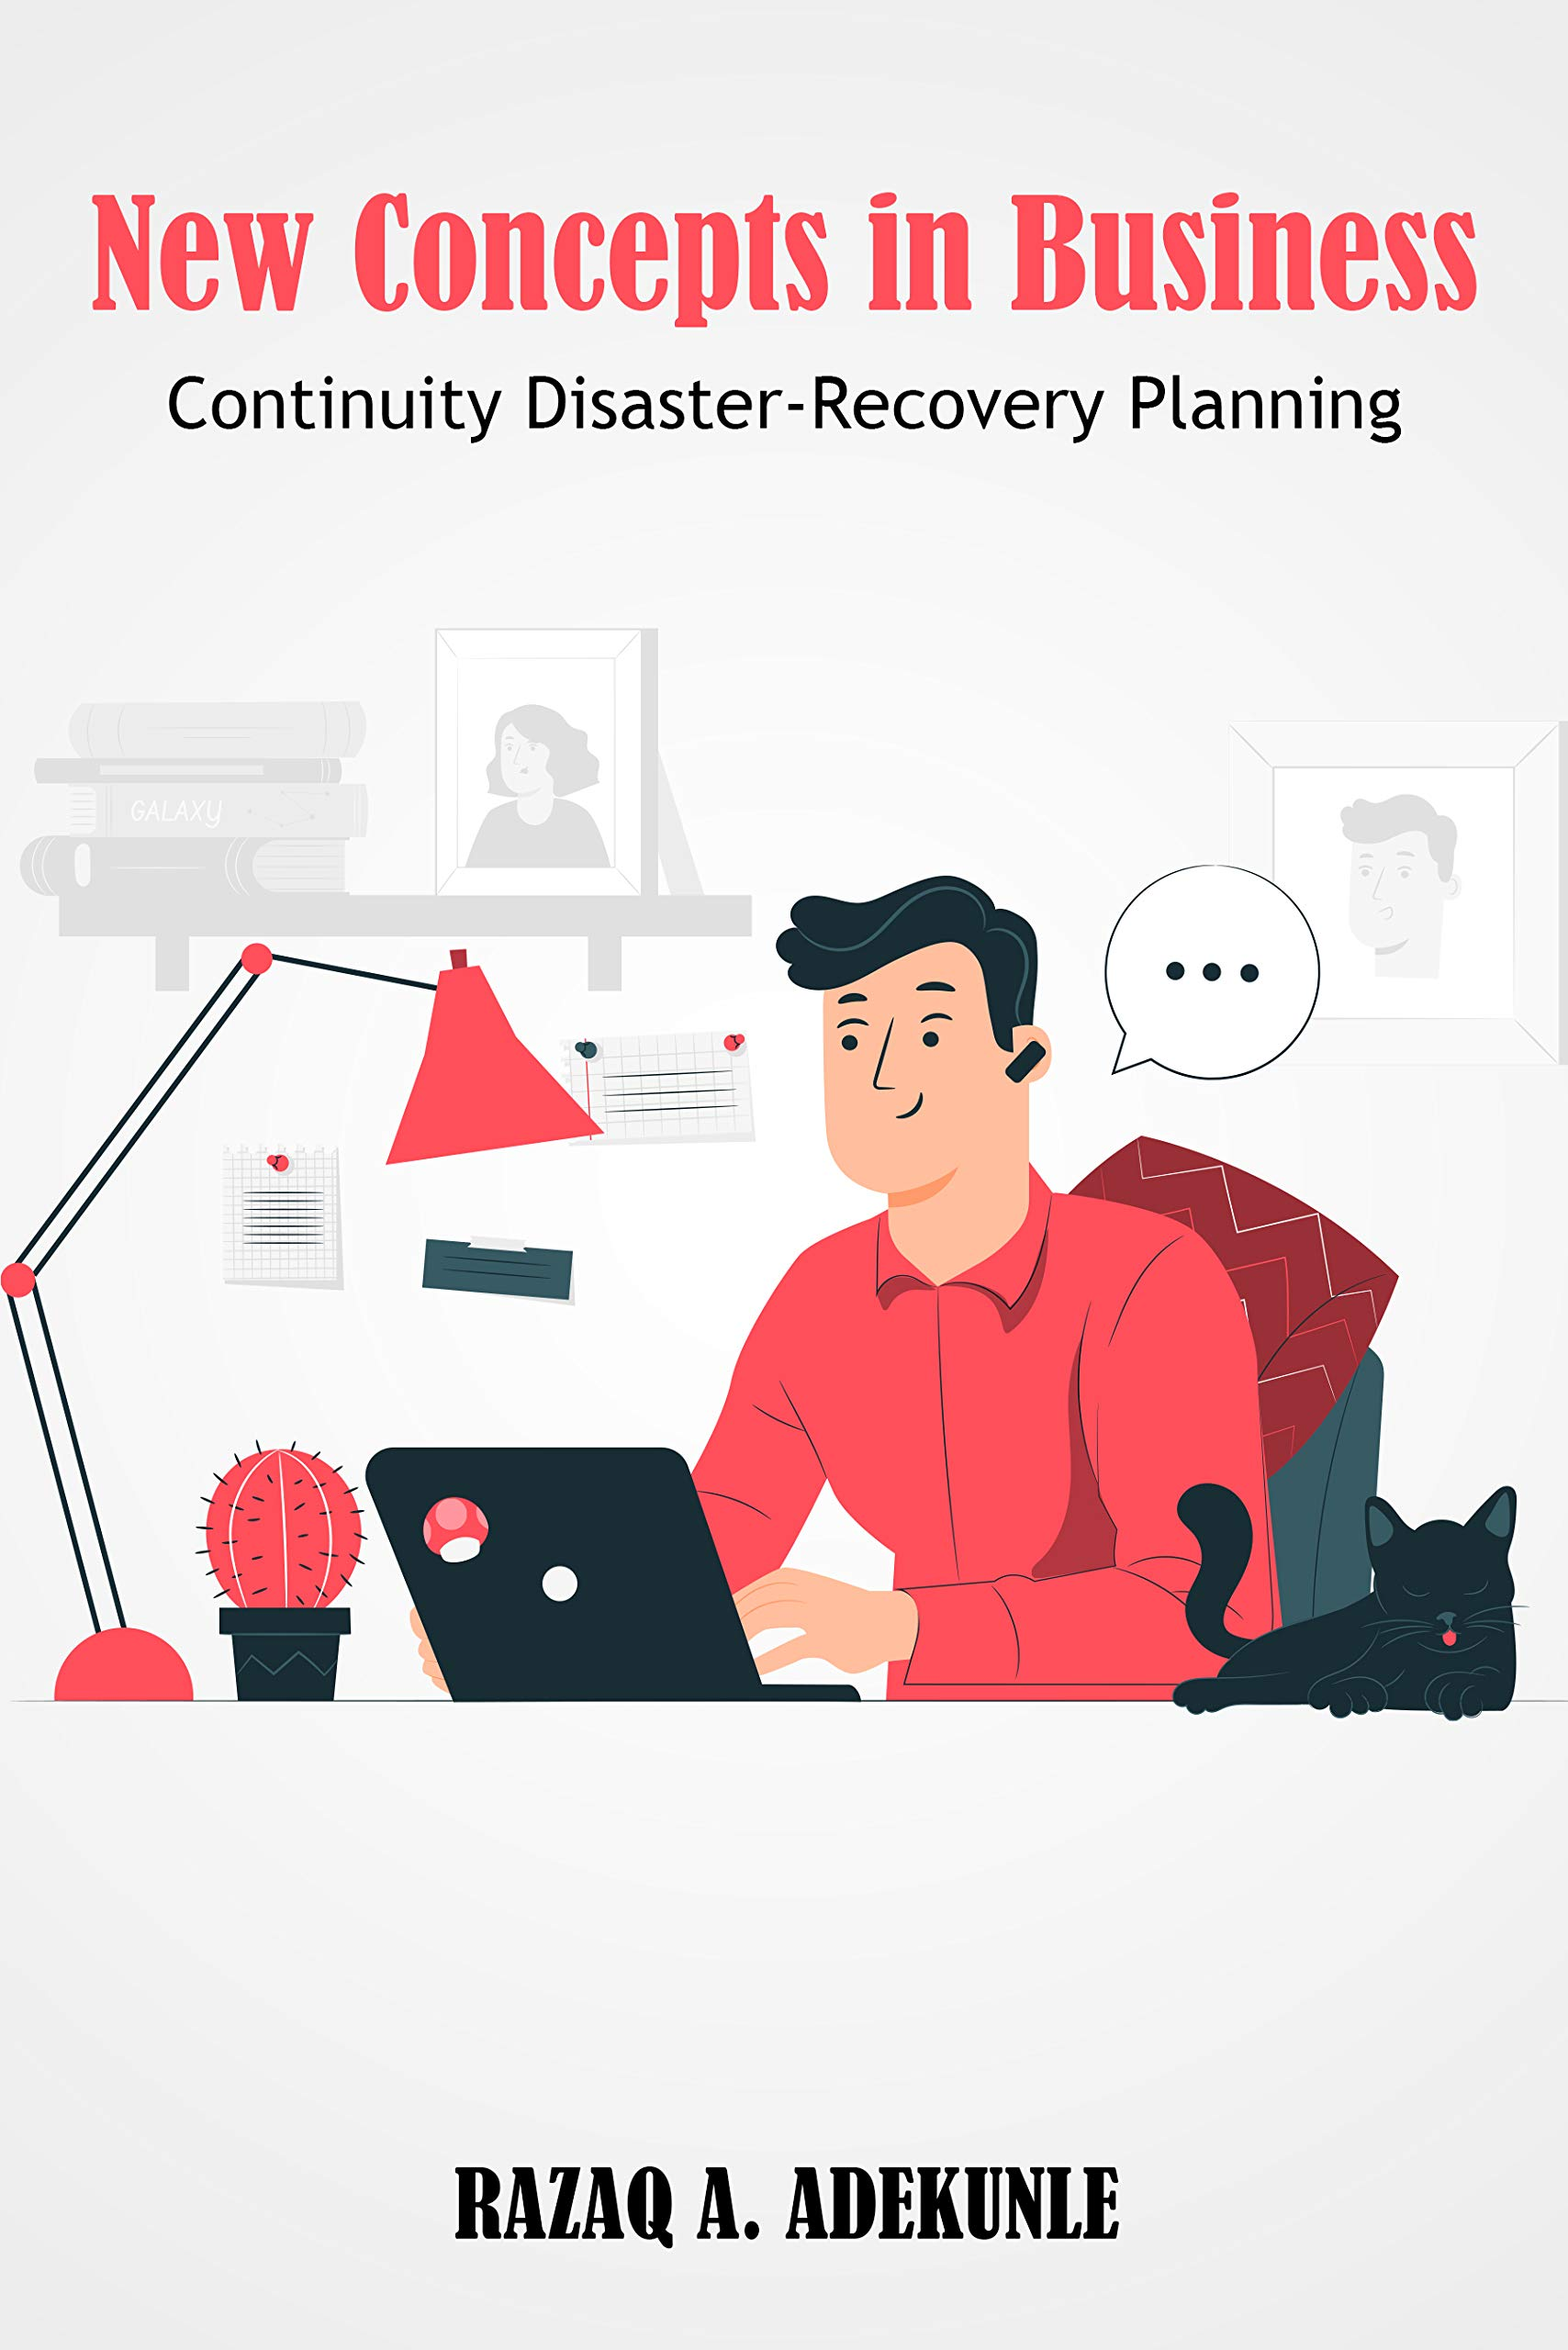 New Concepts in Business: Continuity Disaster-Recovery Planning